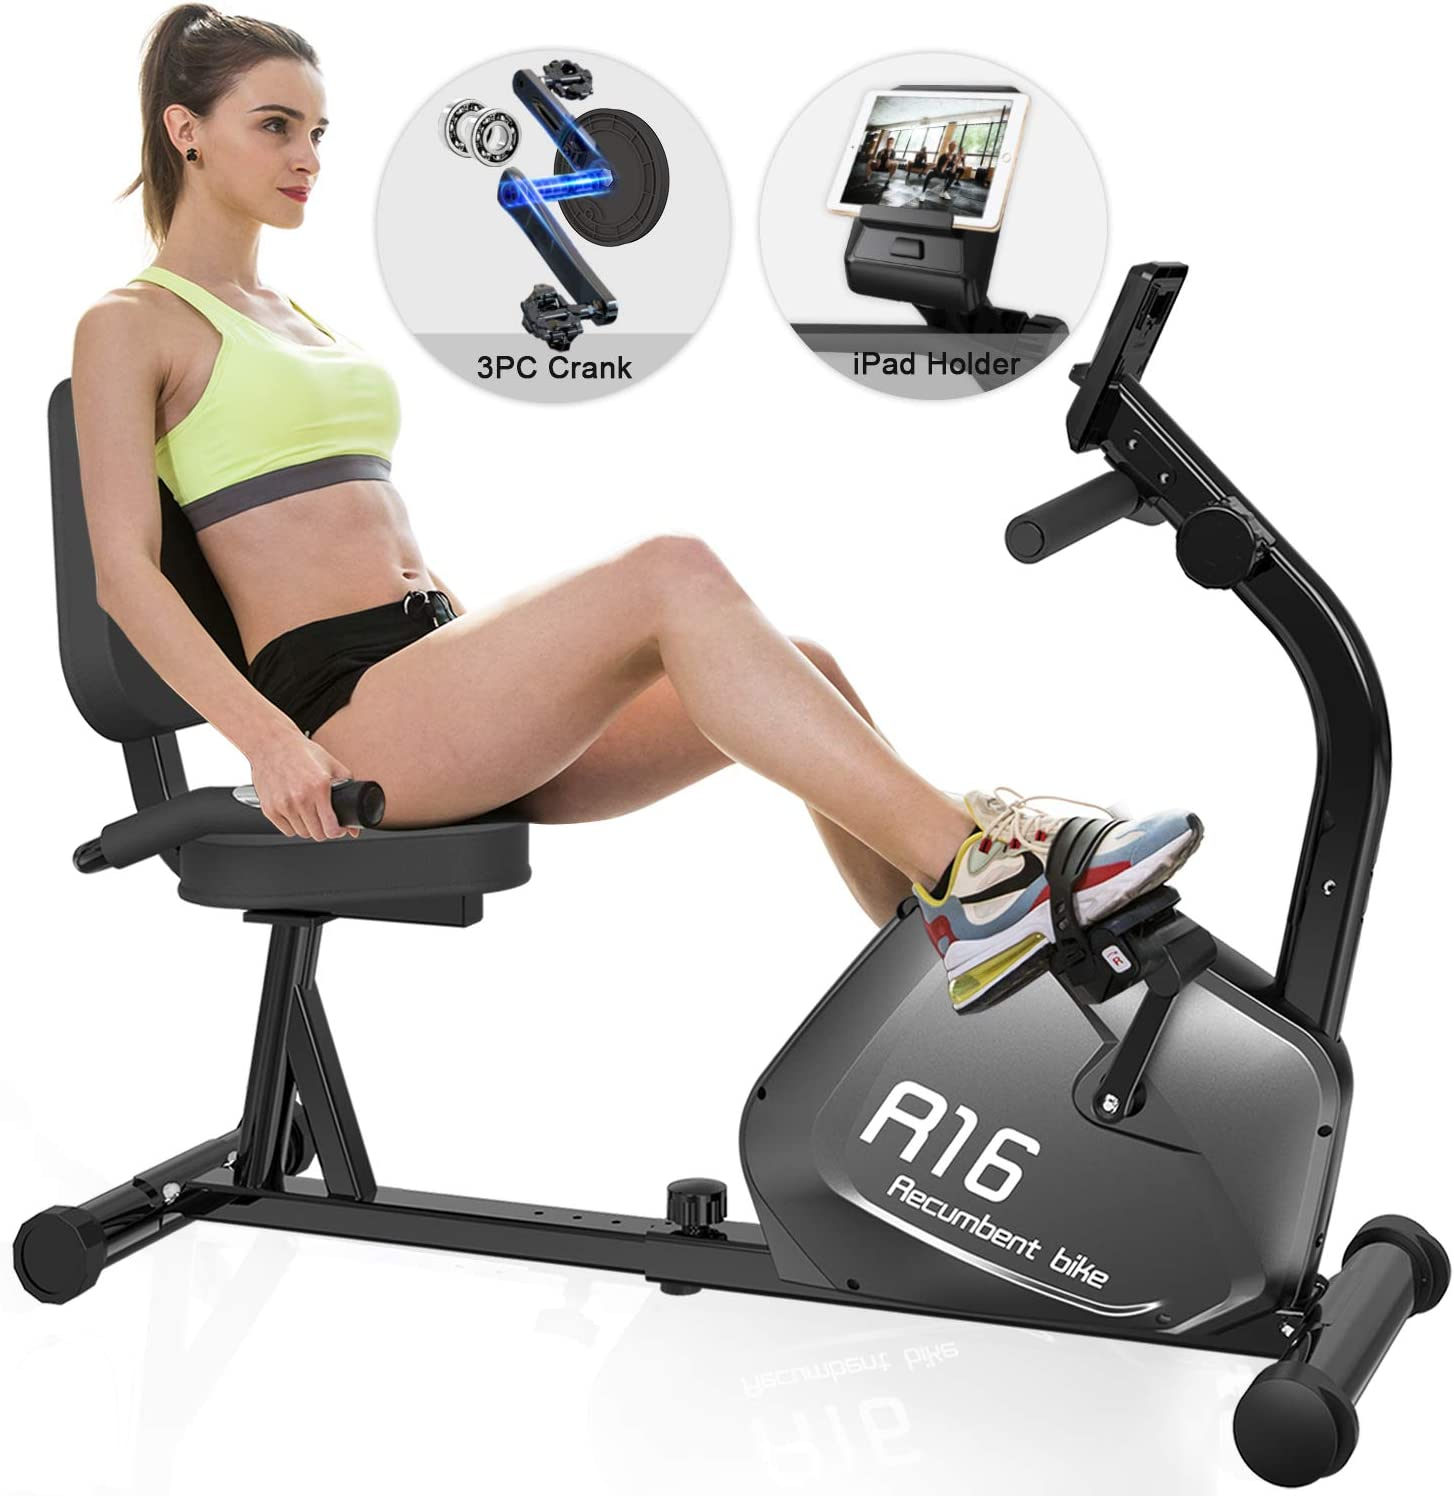 Best Exercise Bike for Bad knees (Arthritic) in 2021 Review